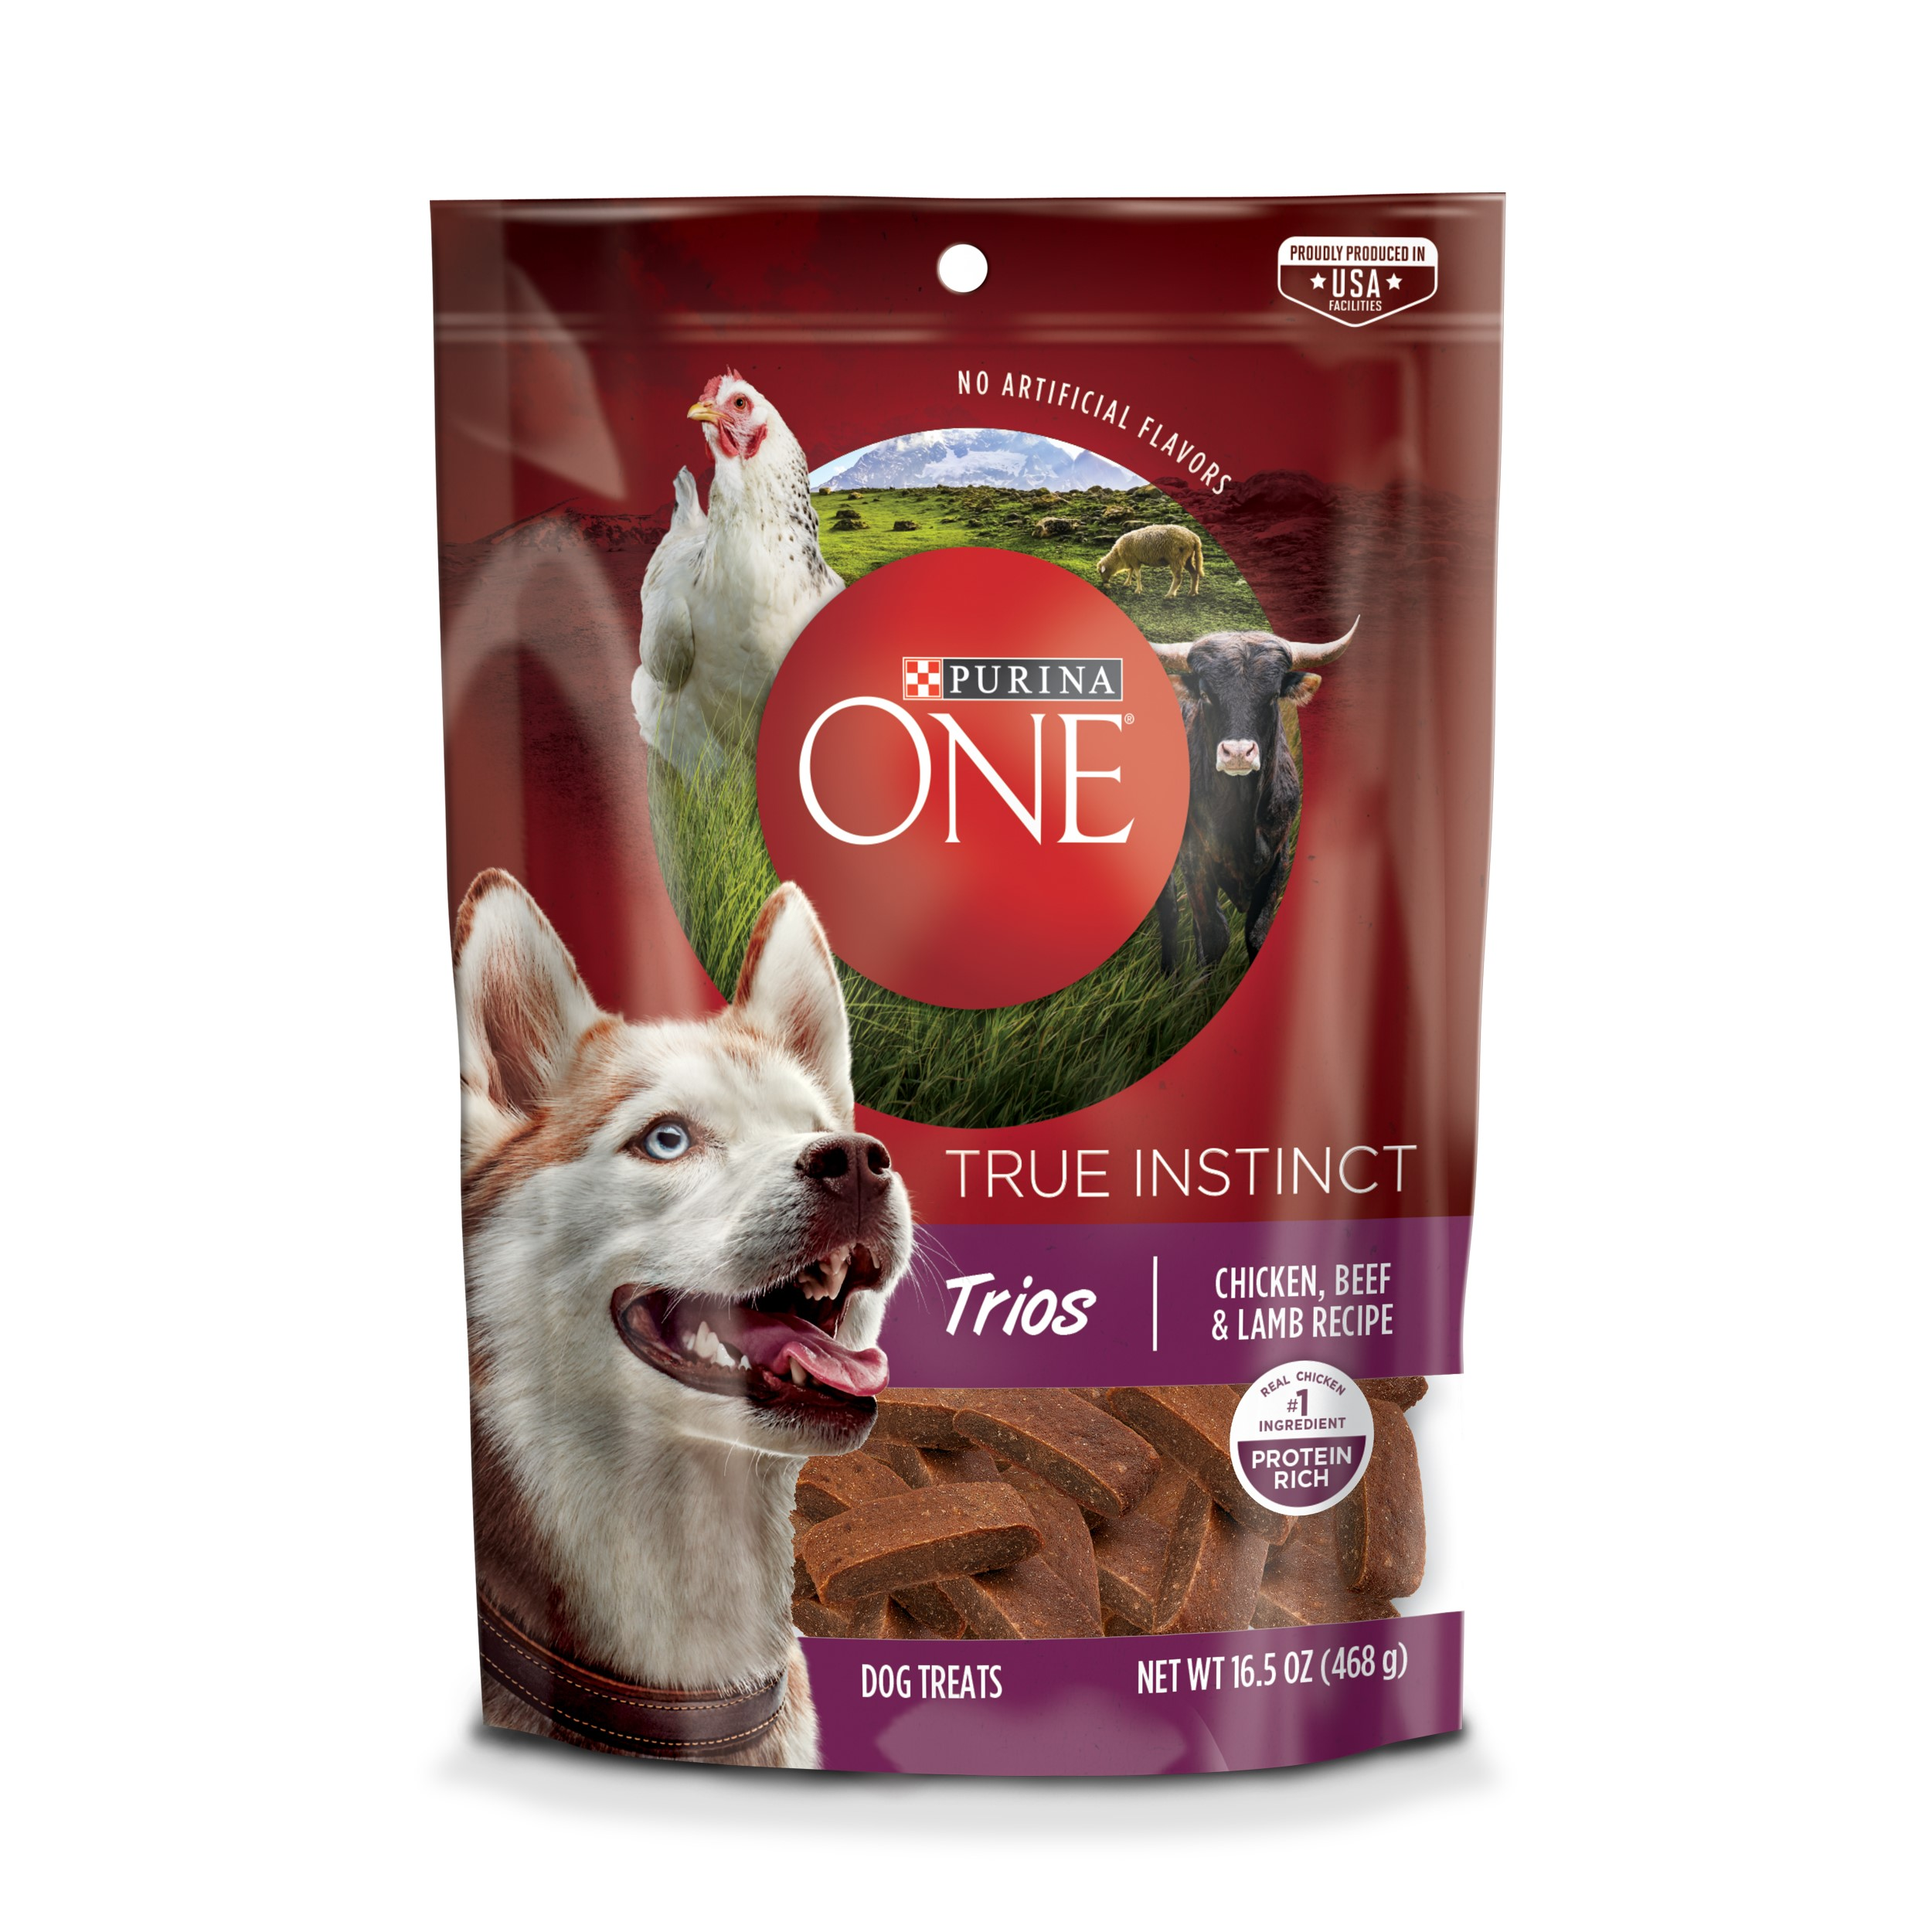 Purina ONE True Instinct Trios Chicken, Beef & Lamb Recipe Dog Treats, 16.5 oz. Pouch